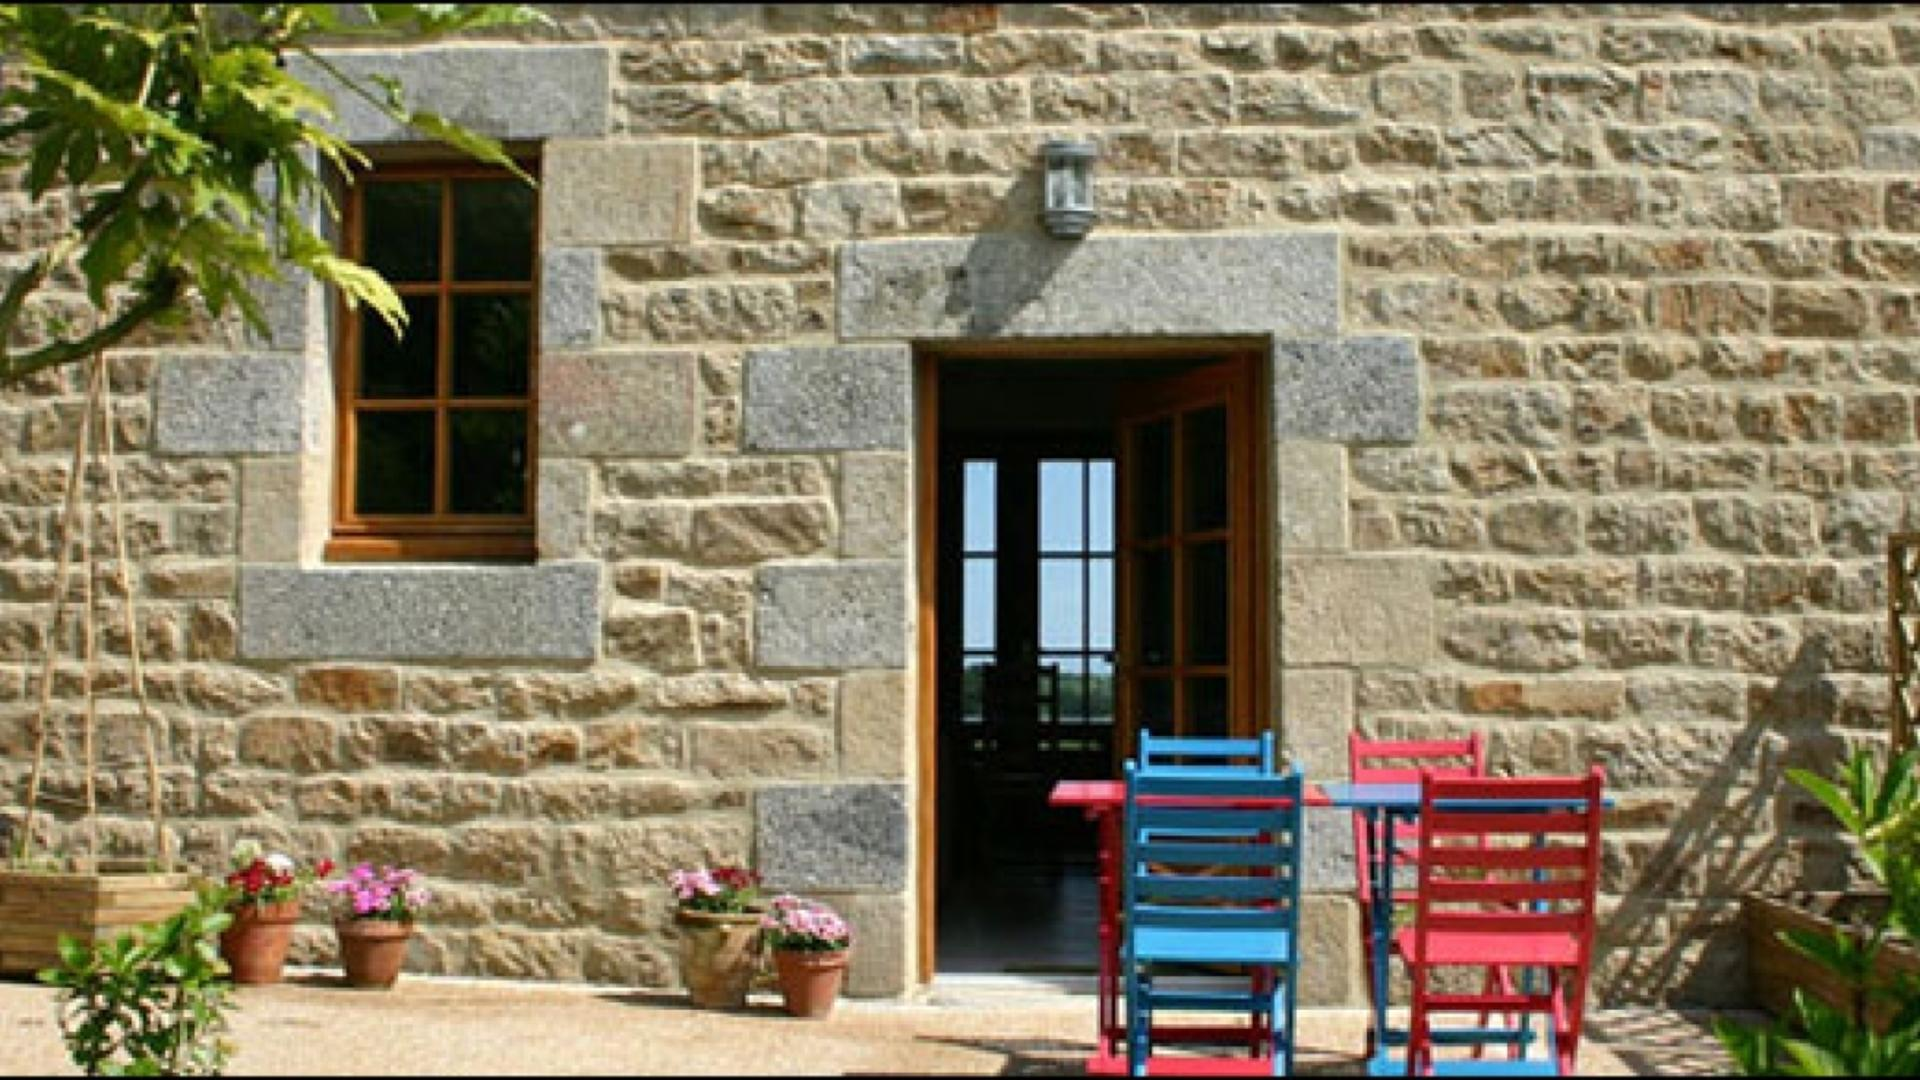 Gites en Tregor family-friendly holiday cottages in Brittany